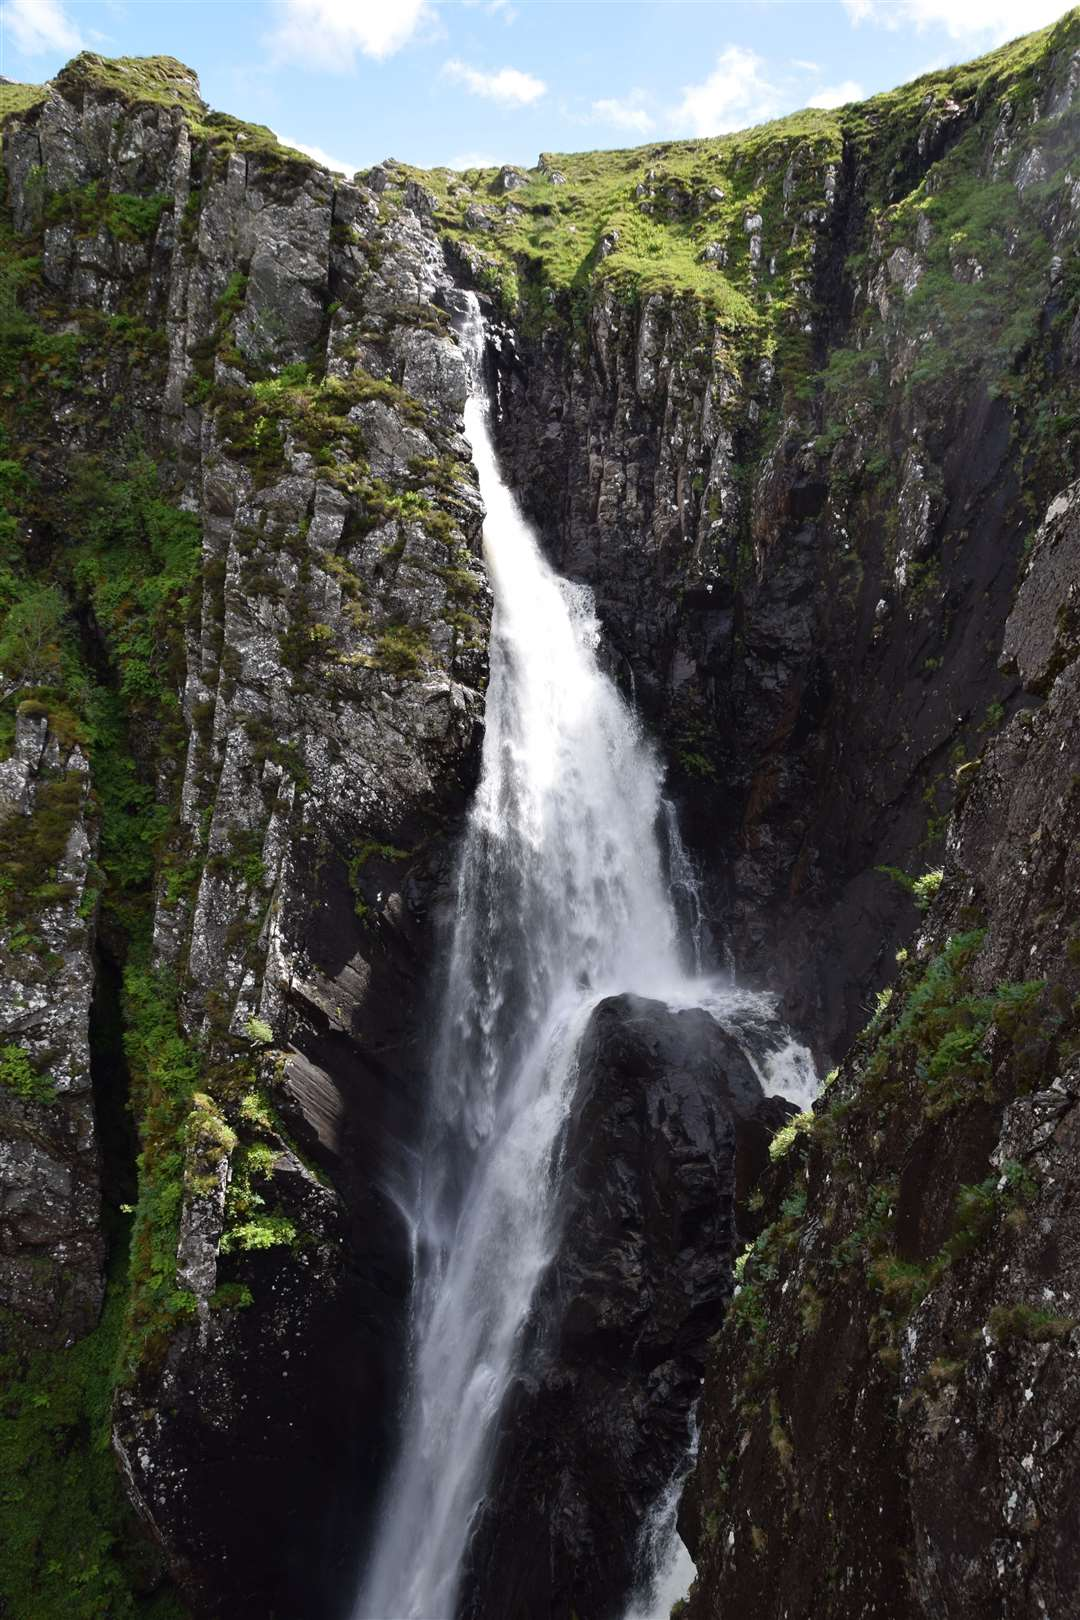 Falls of Glomach, near Kyle of Lochalsh.